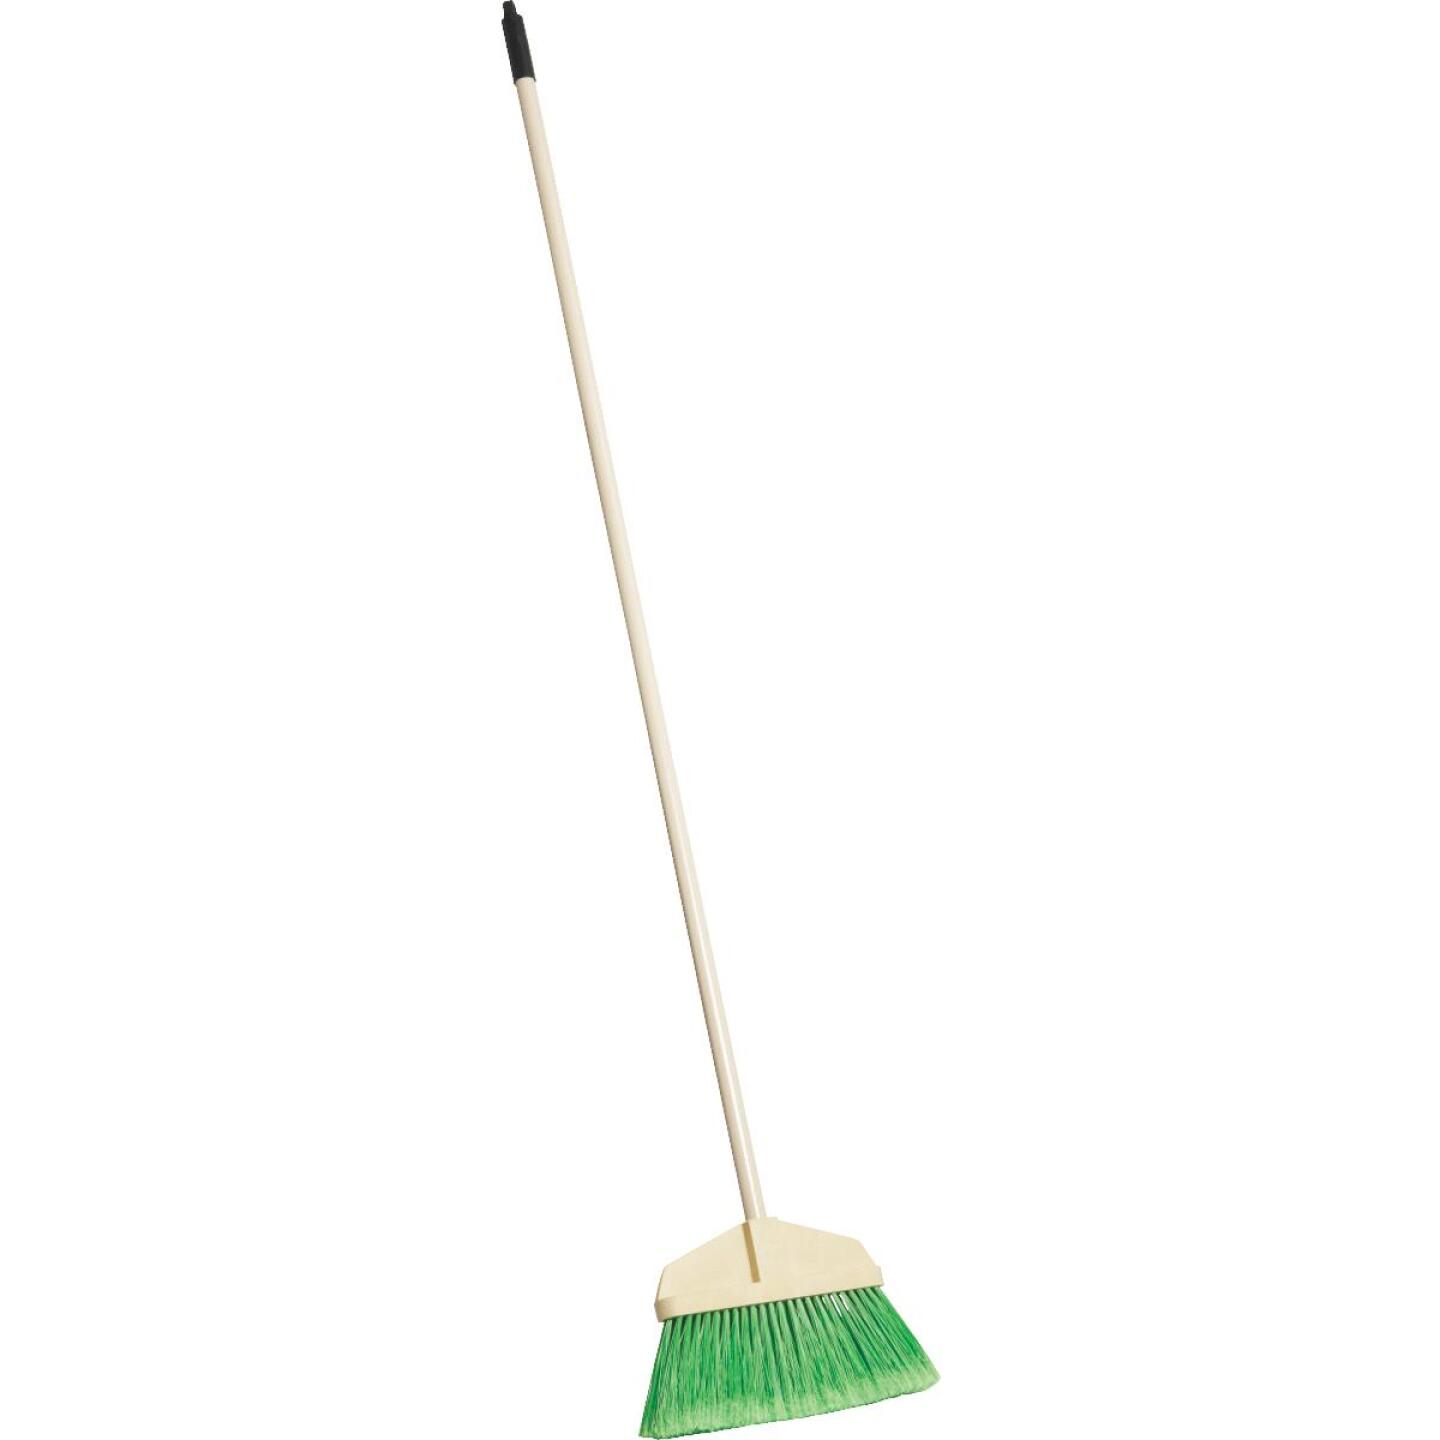 Do it 13 In. W. x 54 In. L. Steel Handle Flared Household Broom Image 3